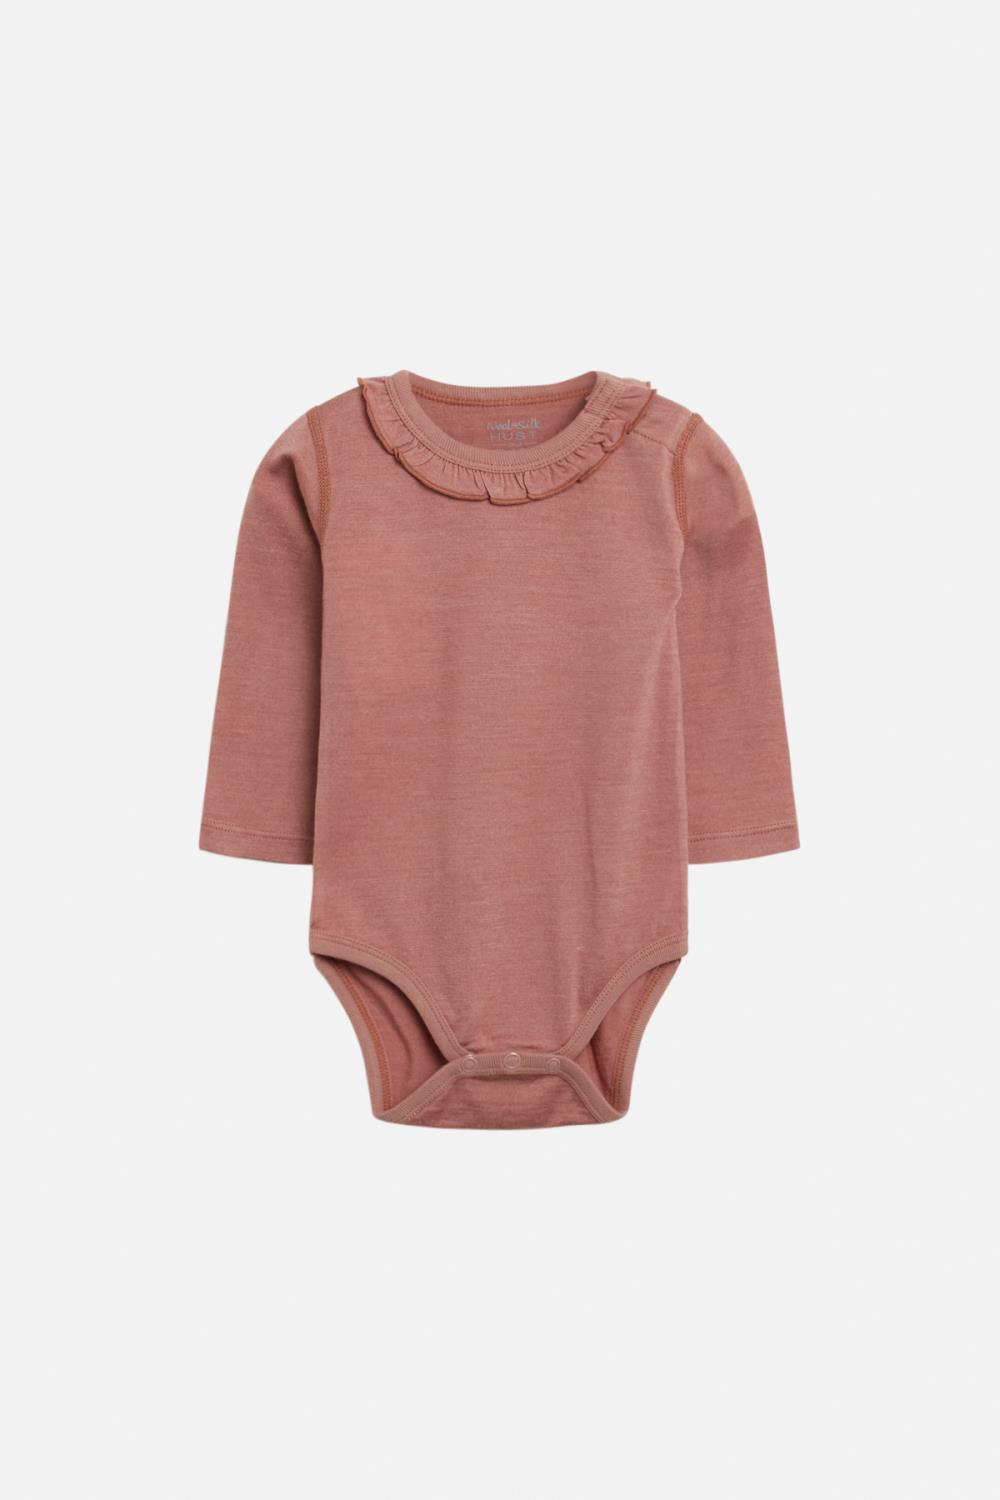 Hust and Claire - AW 20 Body Bianca i ull/silke, rosa